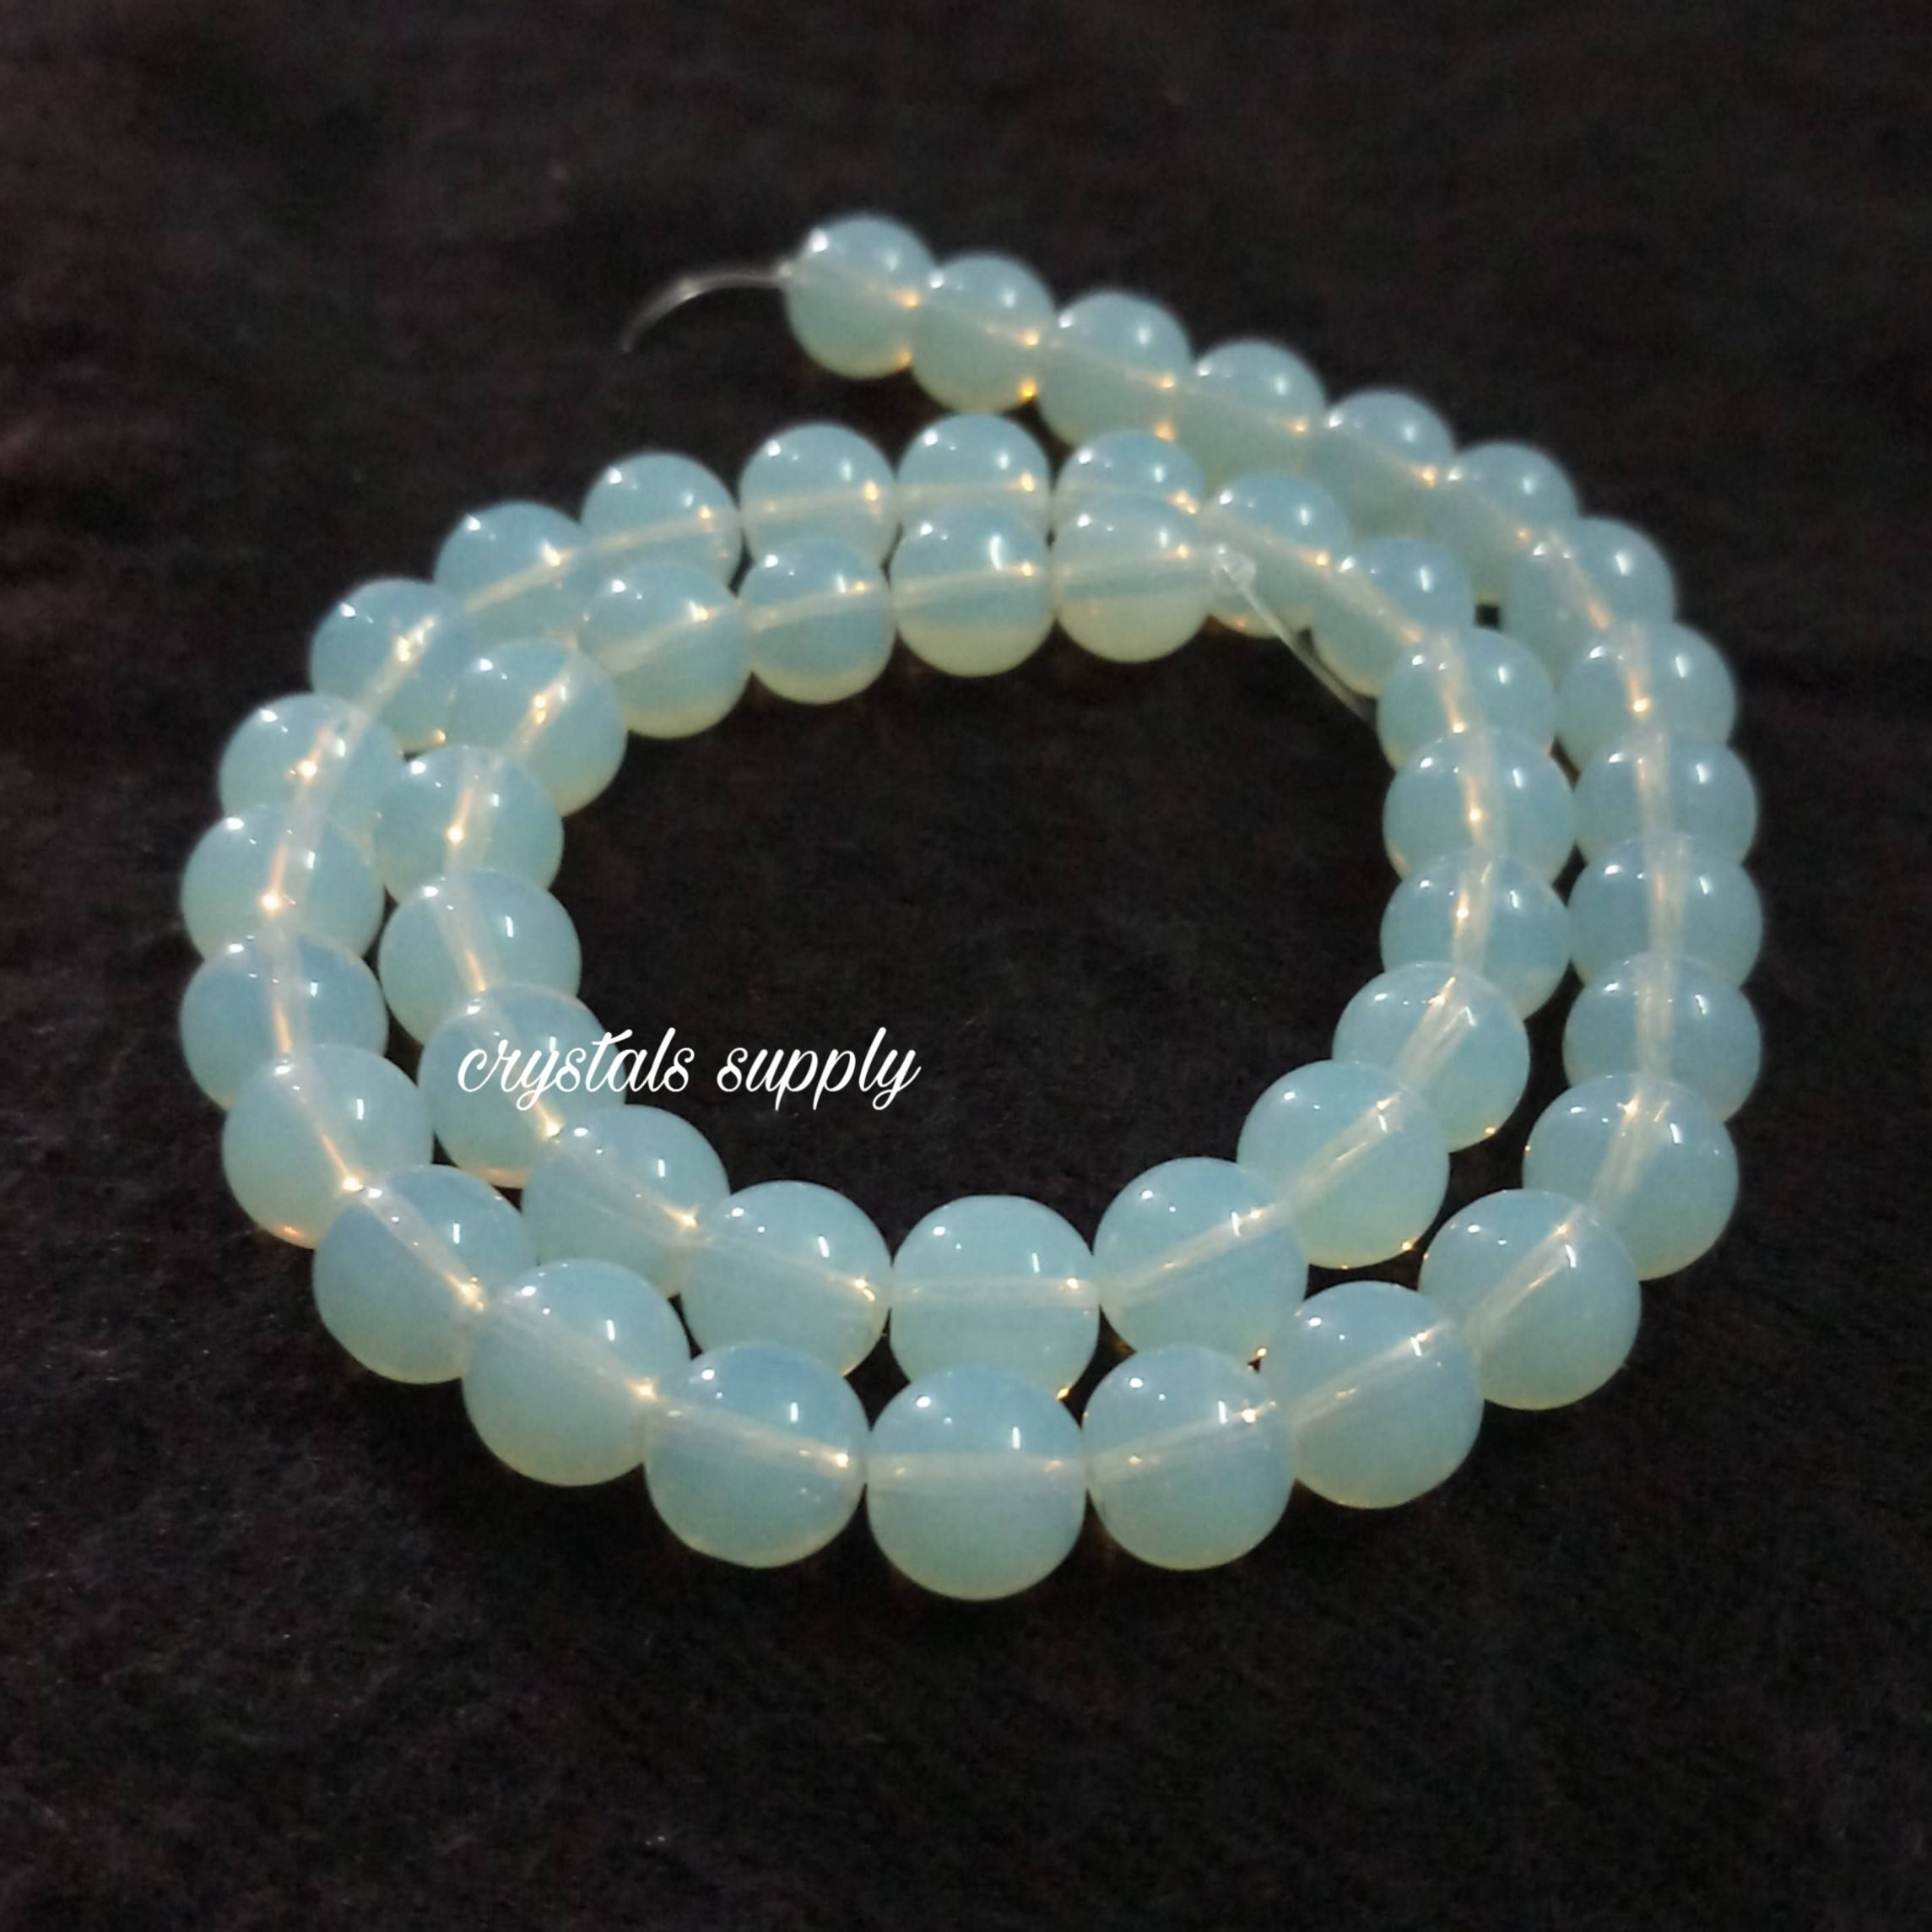 Opalite Beads For Jewelry Making : Loose Round Blue Opal Gemstone Beads Opal Opalite Beads